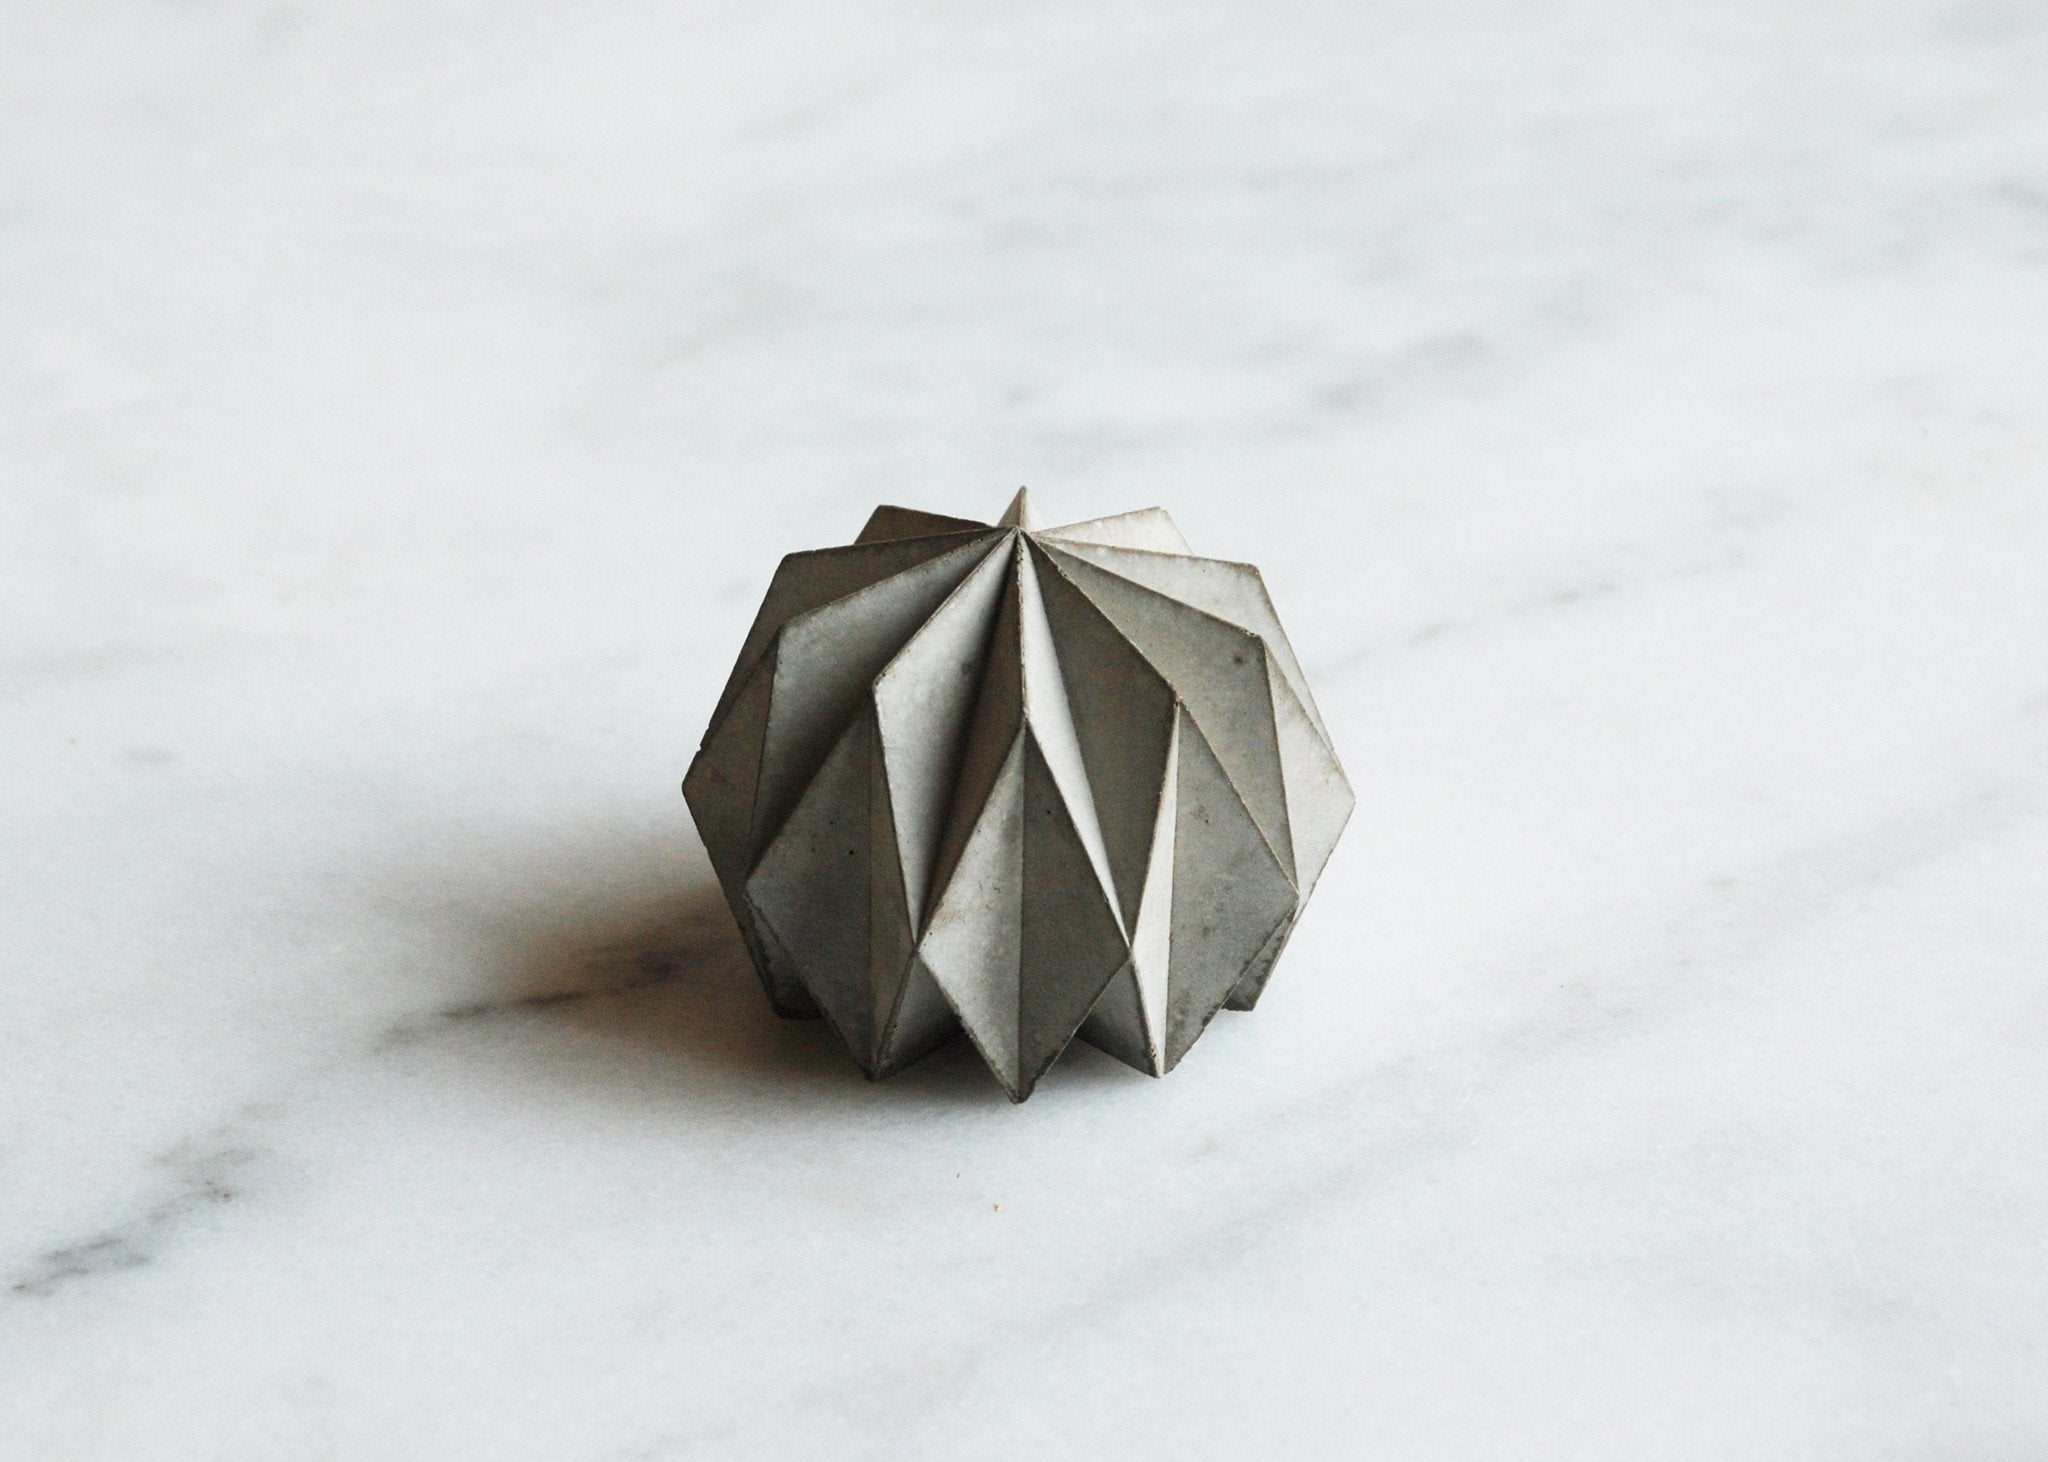 One small concrete origami object